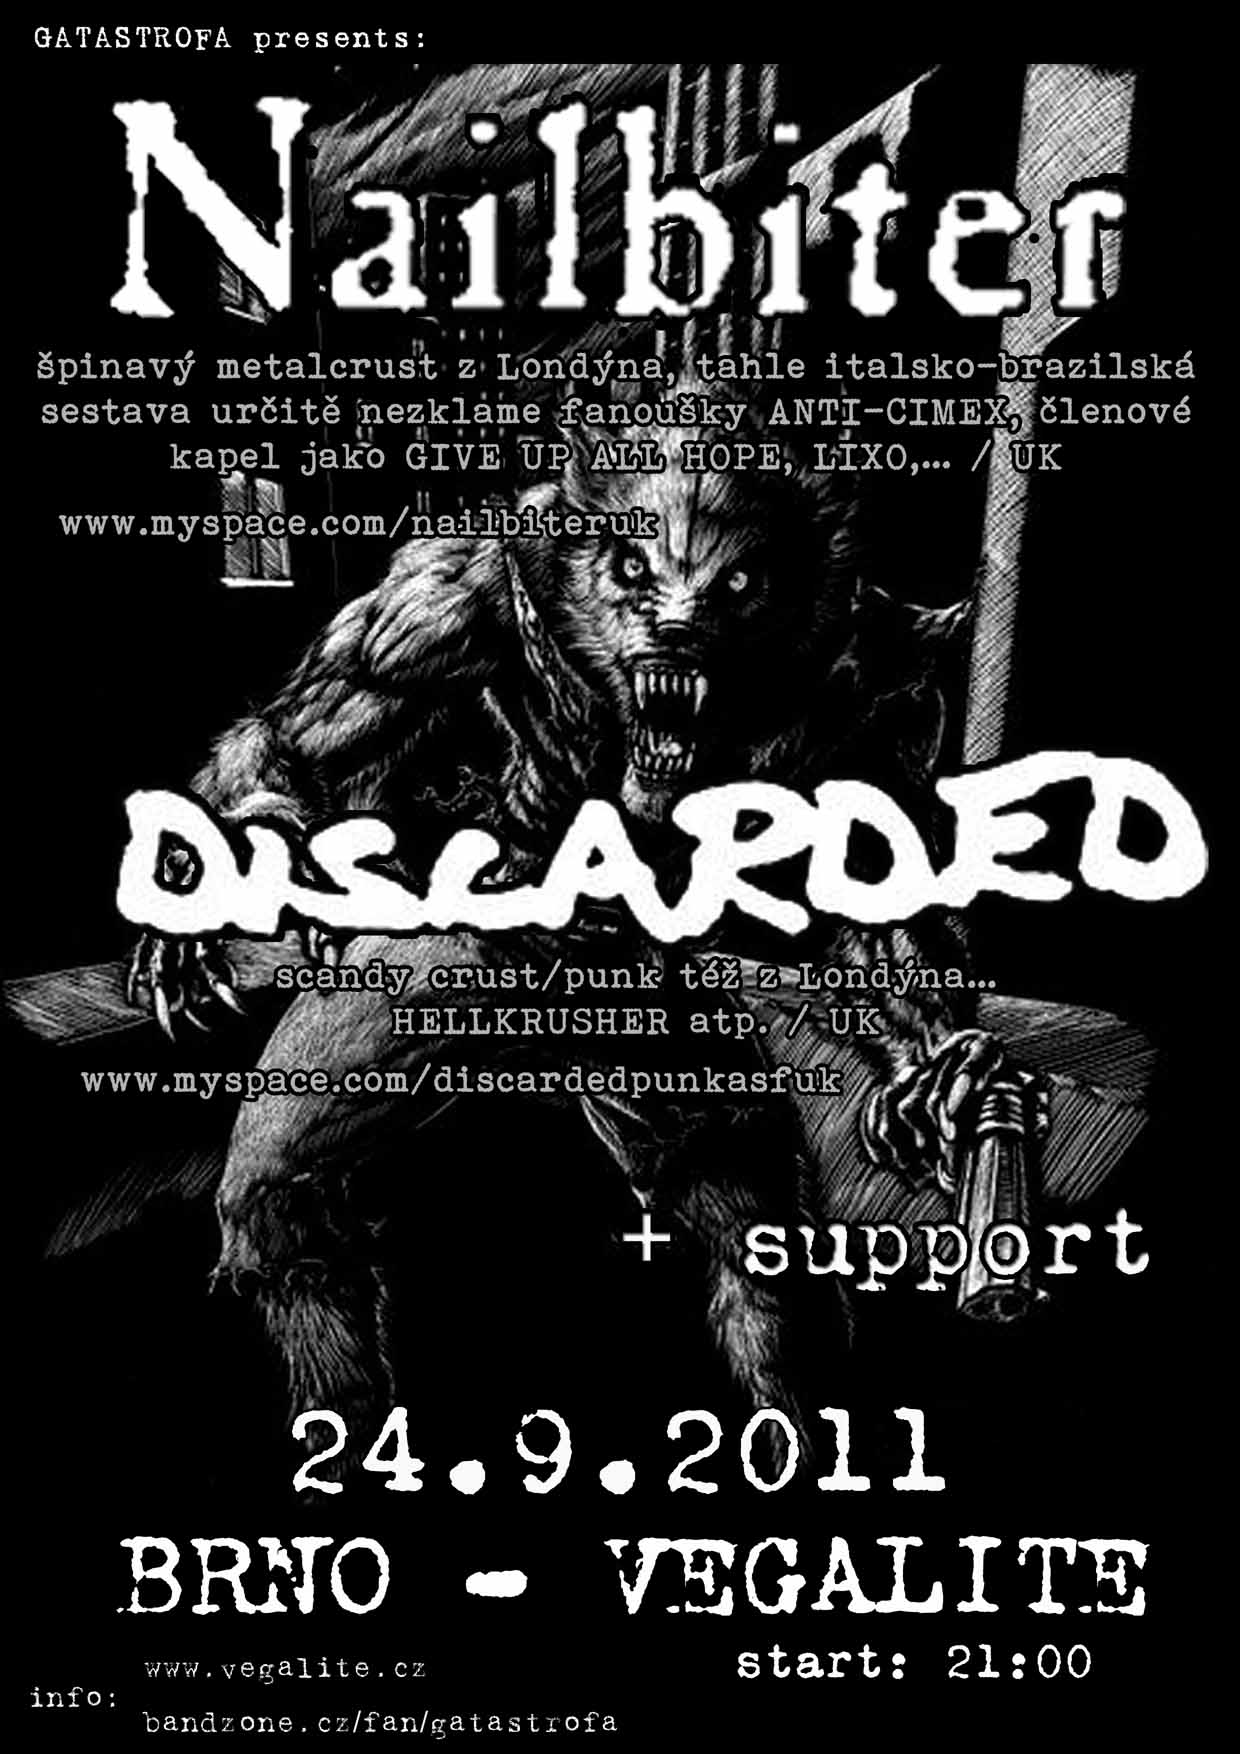 NAILBITER /uk + DISCARDED/uk + support